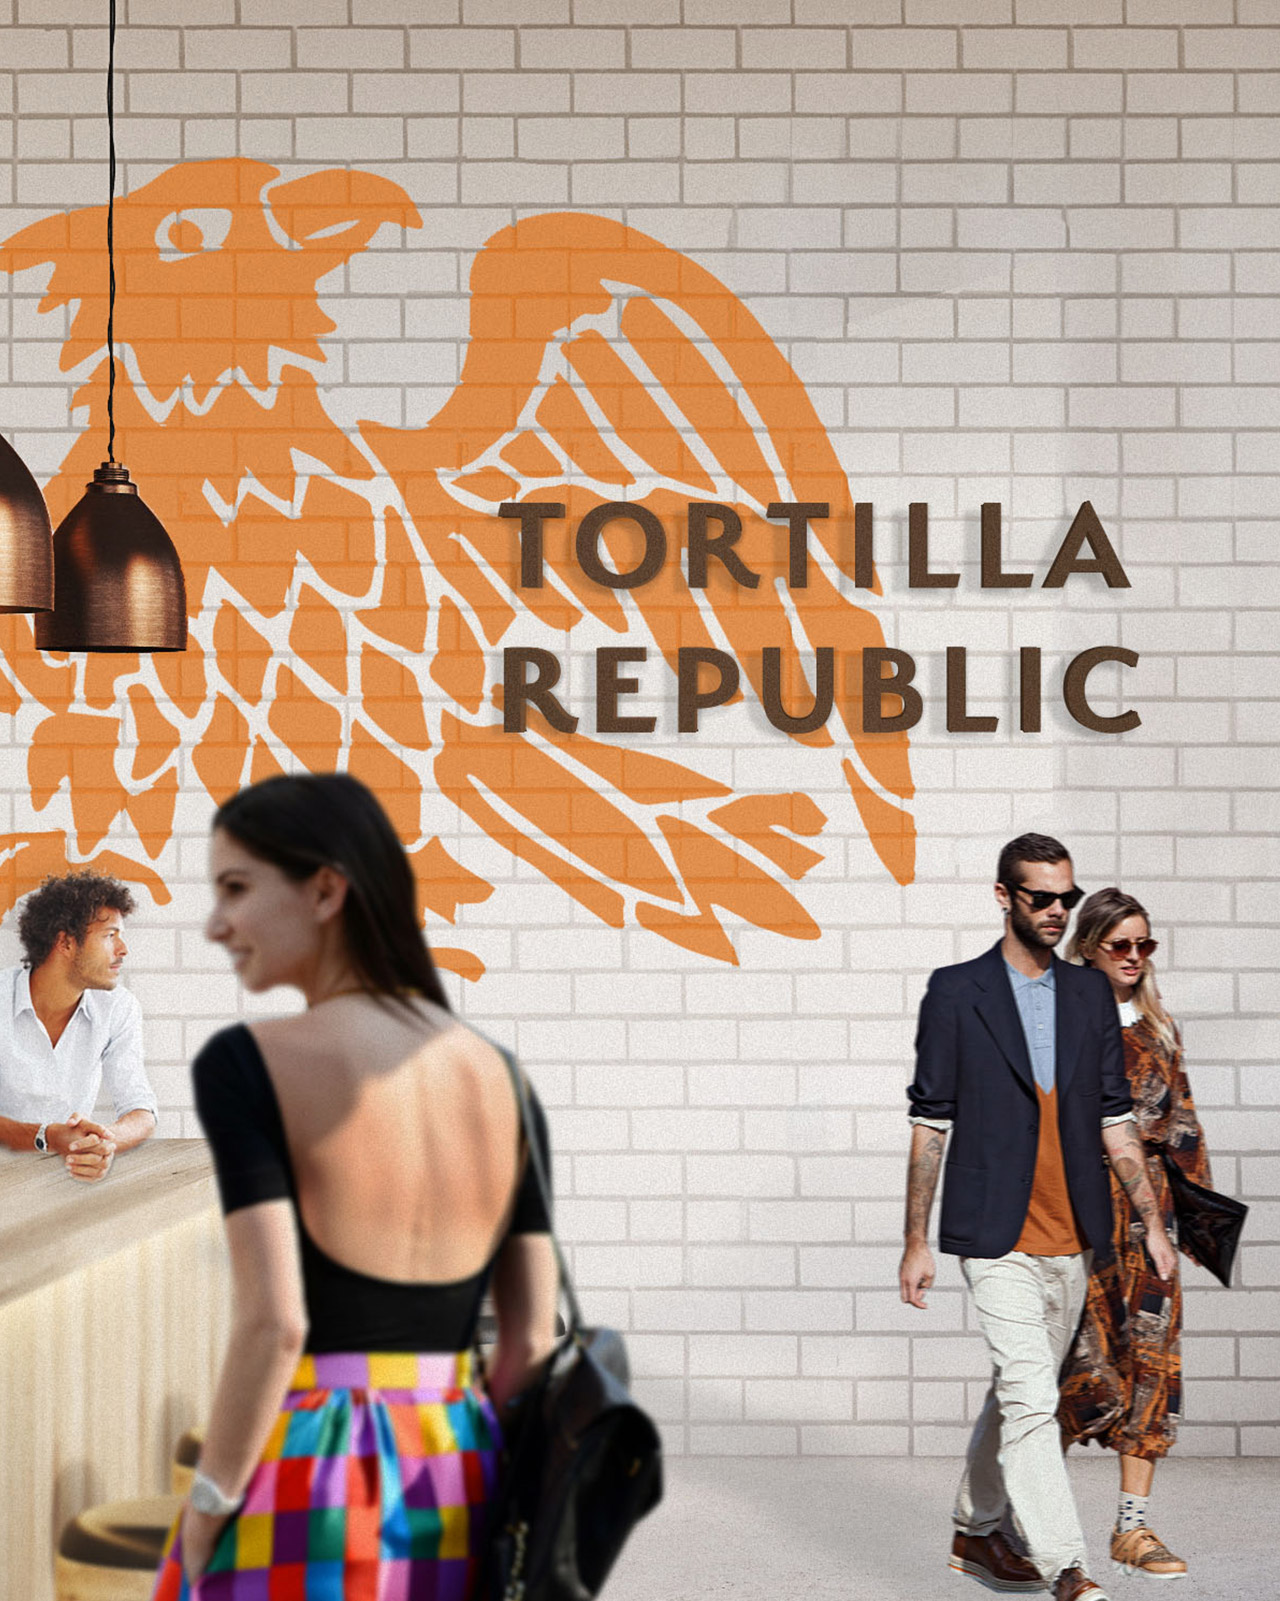 Tortilla Republic sign on white brock wall with large orange eagle behind bar